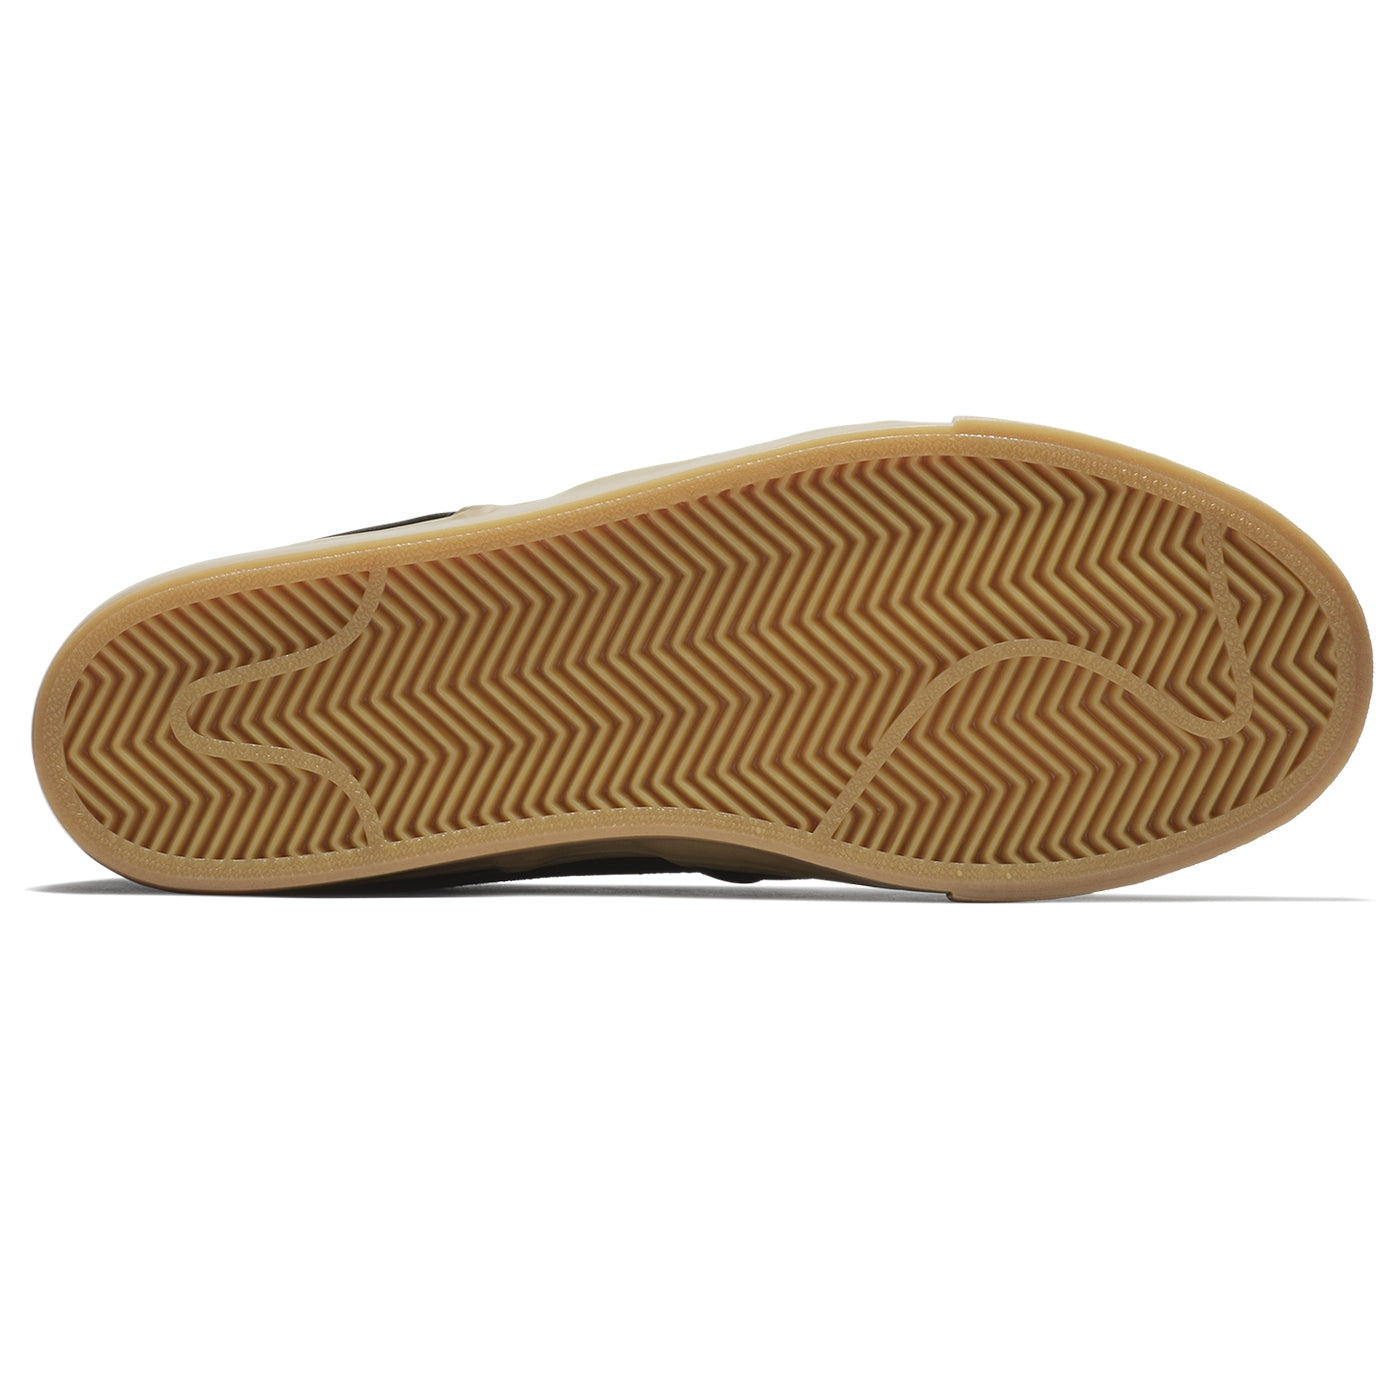 595eebd3c Nike SB Zoom Stefan Janoski Slip Shoes - Black   Gunsmoke - Gum Light Brown.  Size Charts